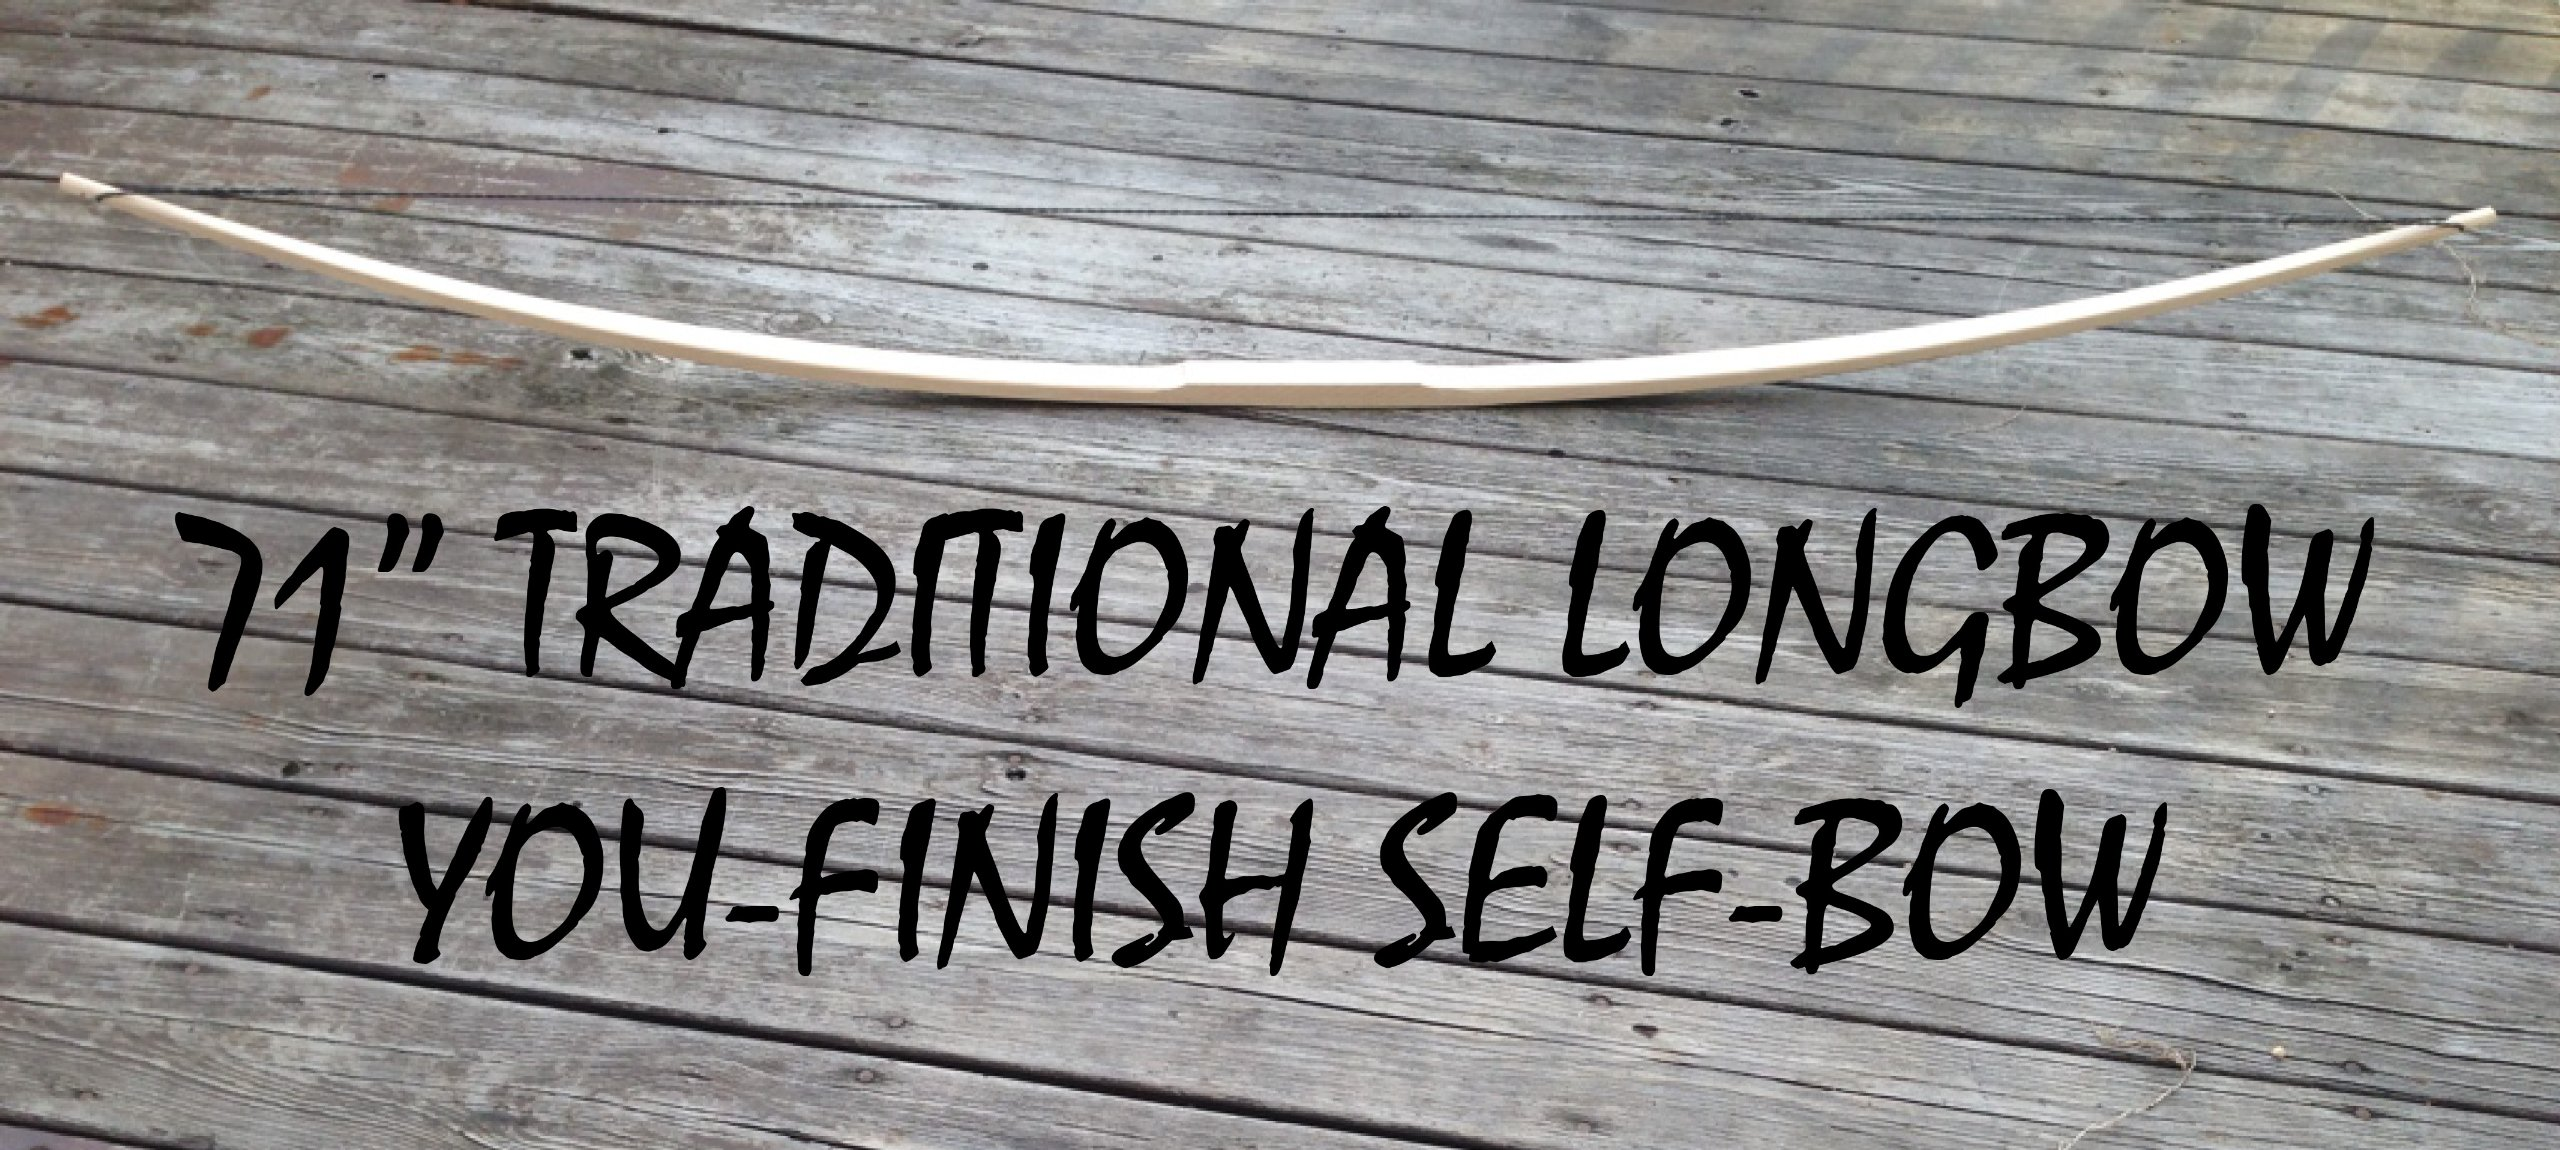 50lb 71'' You-Finish Traditional Hickory Longbow! Competition or Hunting Bow! Wood Archery! by RingingRocksArchery.com (Image #1)